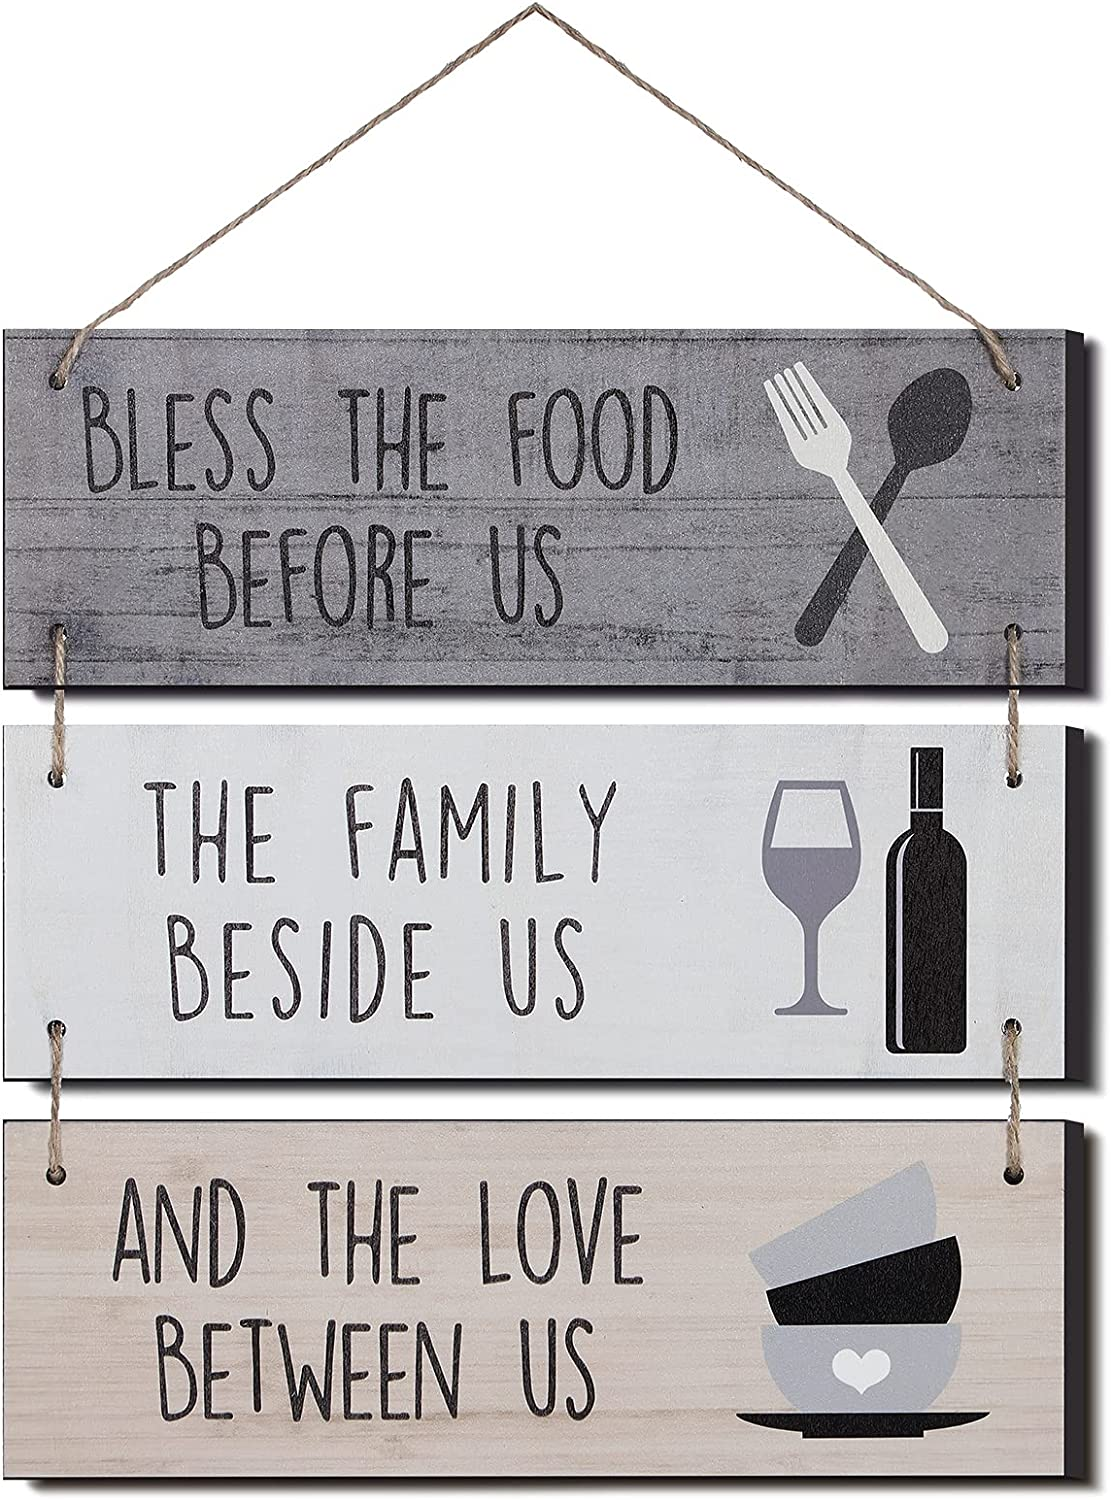 Jetec Bless The Food Before Us Wooden Wall Sign Rustic Hanging Wall Sign Farmhouse Kitchen Wall Decoration Dining Room Wood Sign for Home Kitchen Wall Door Decor